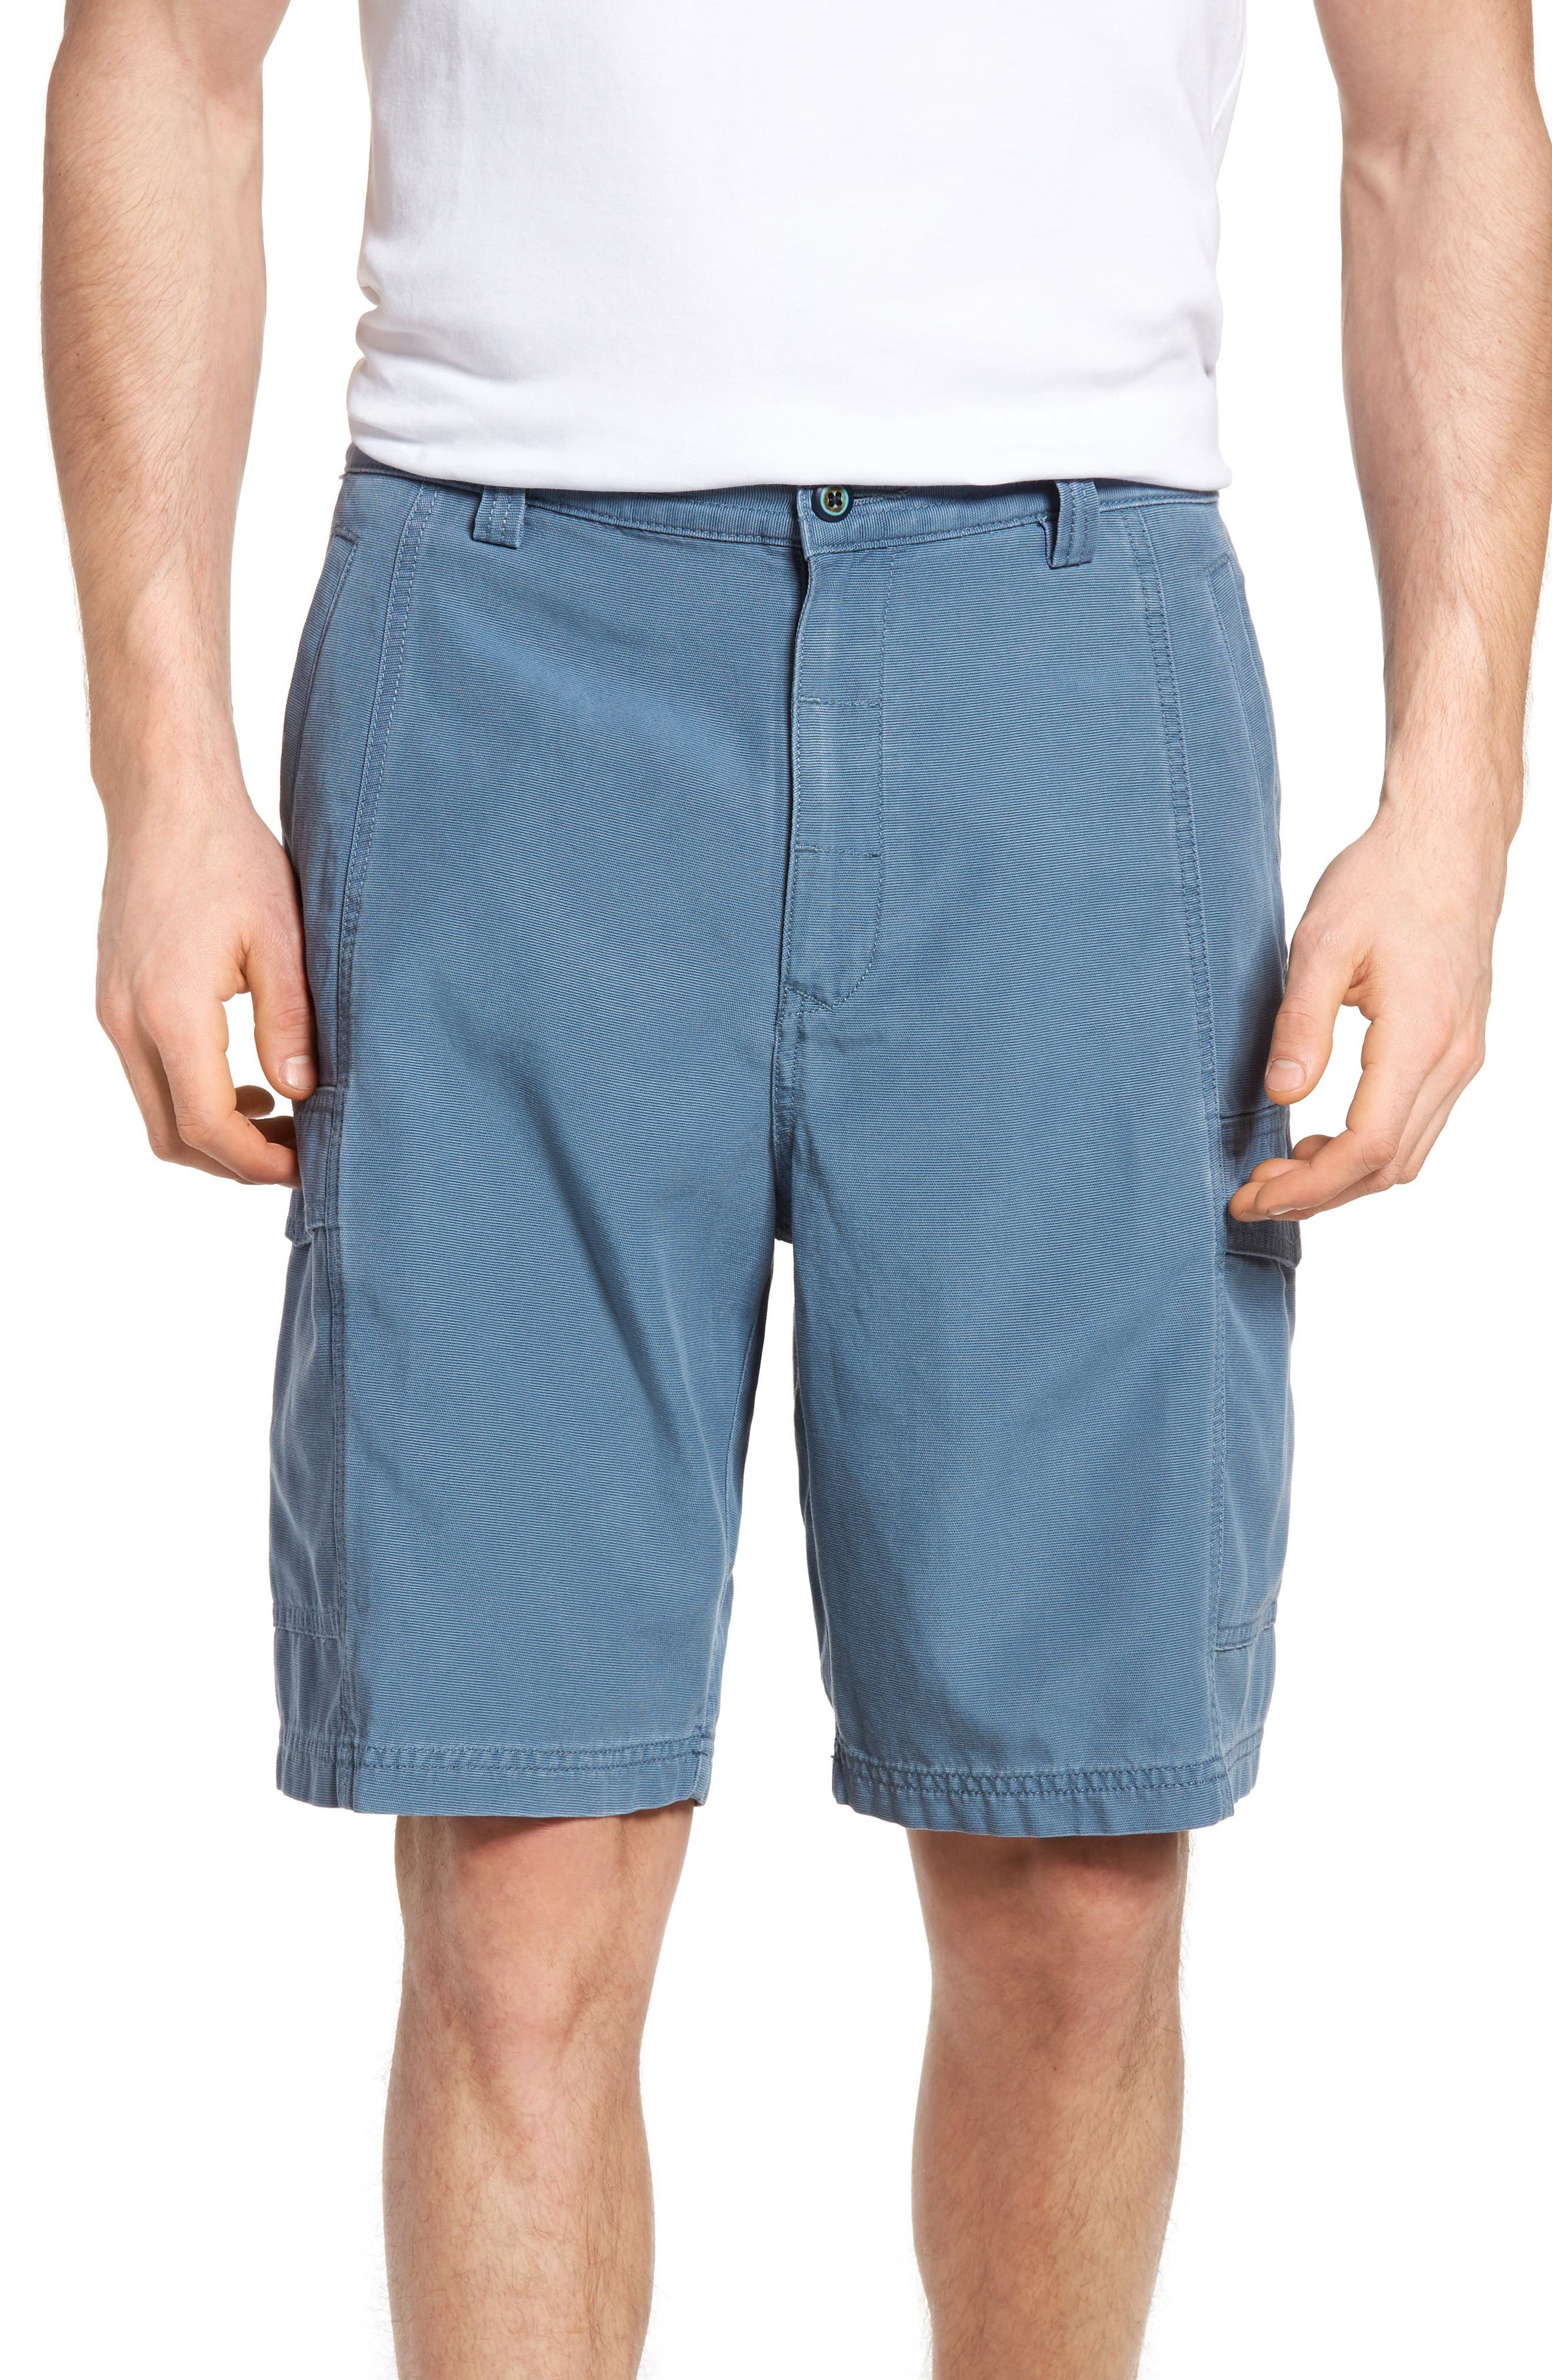 Main Image - Tommy Bahama 'Key Grip' Relaxed Fit Cargo Shorts